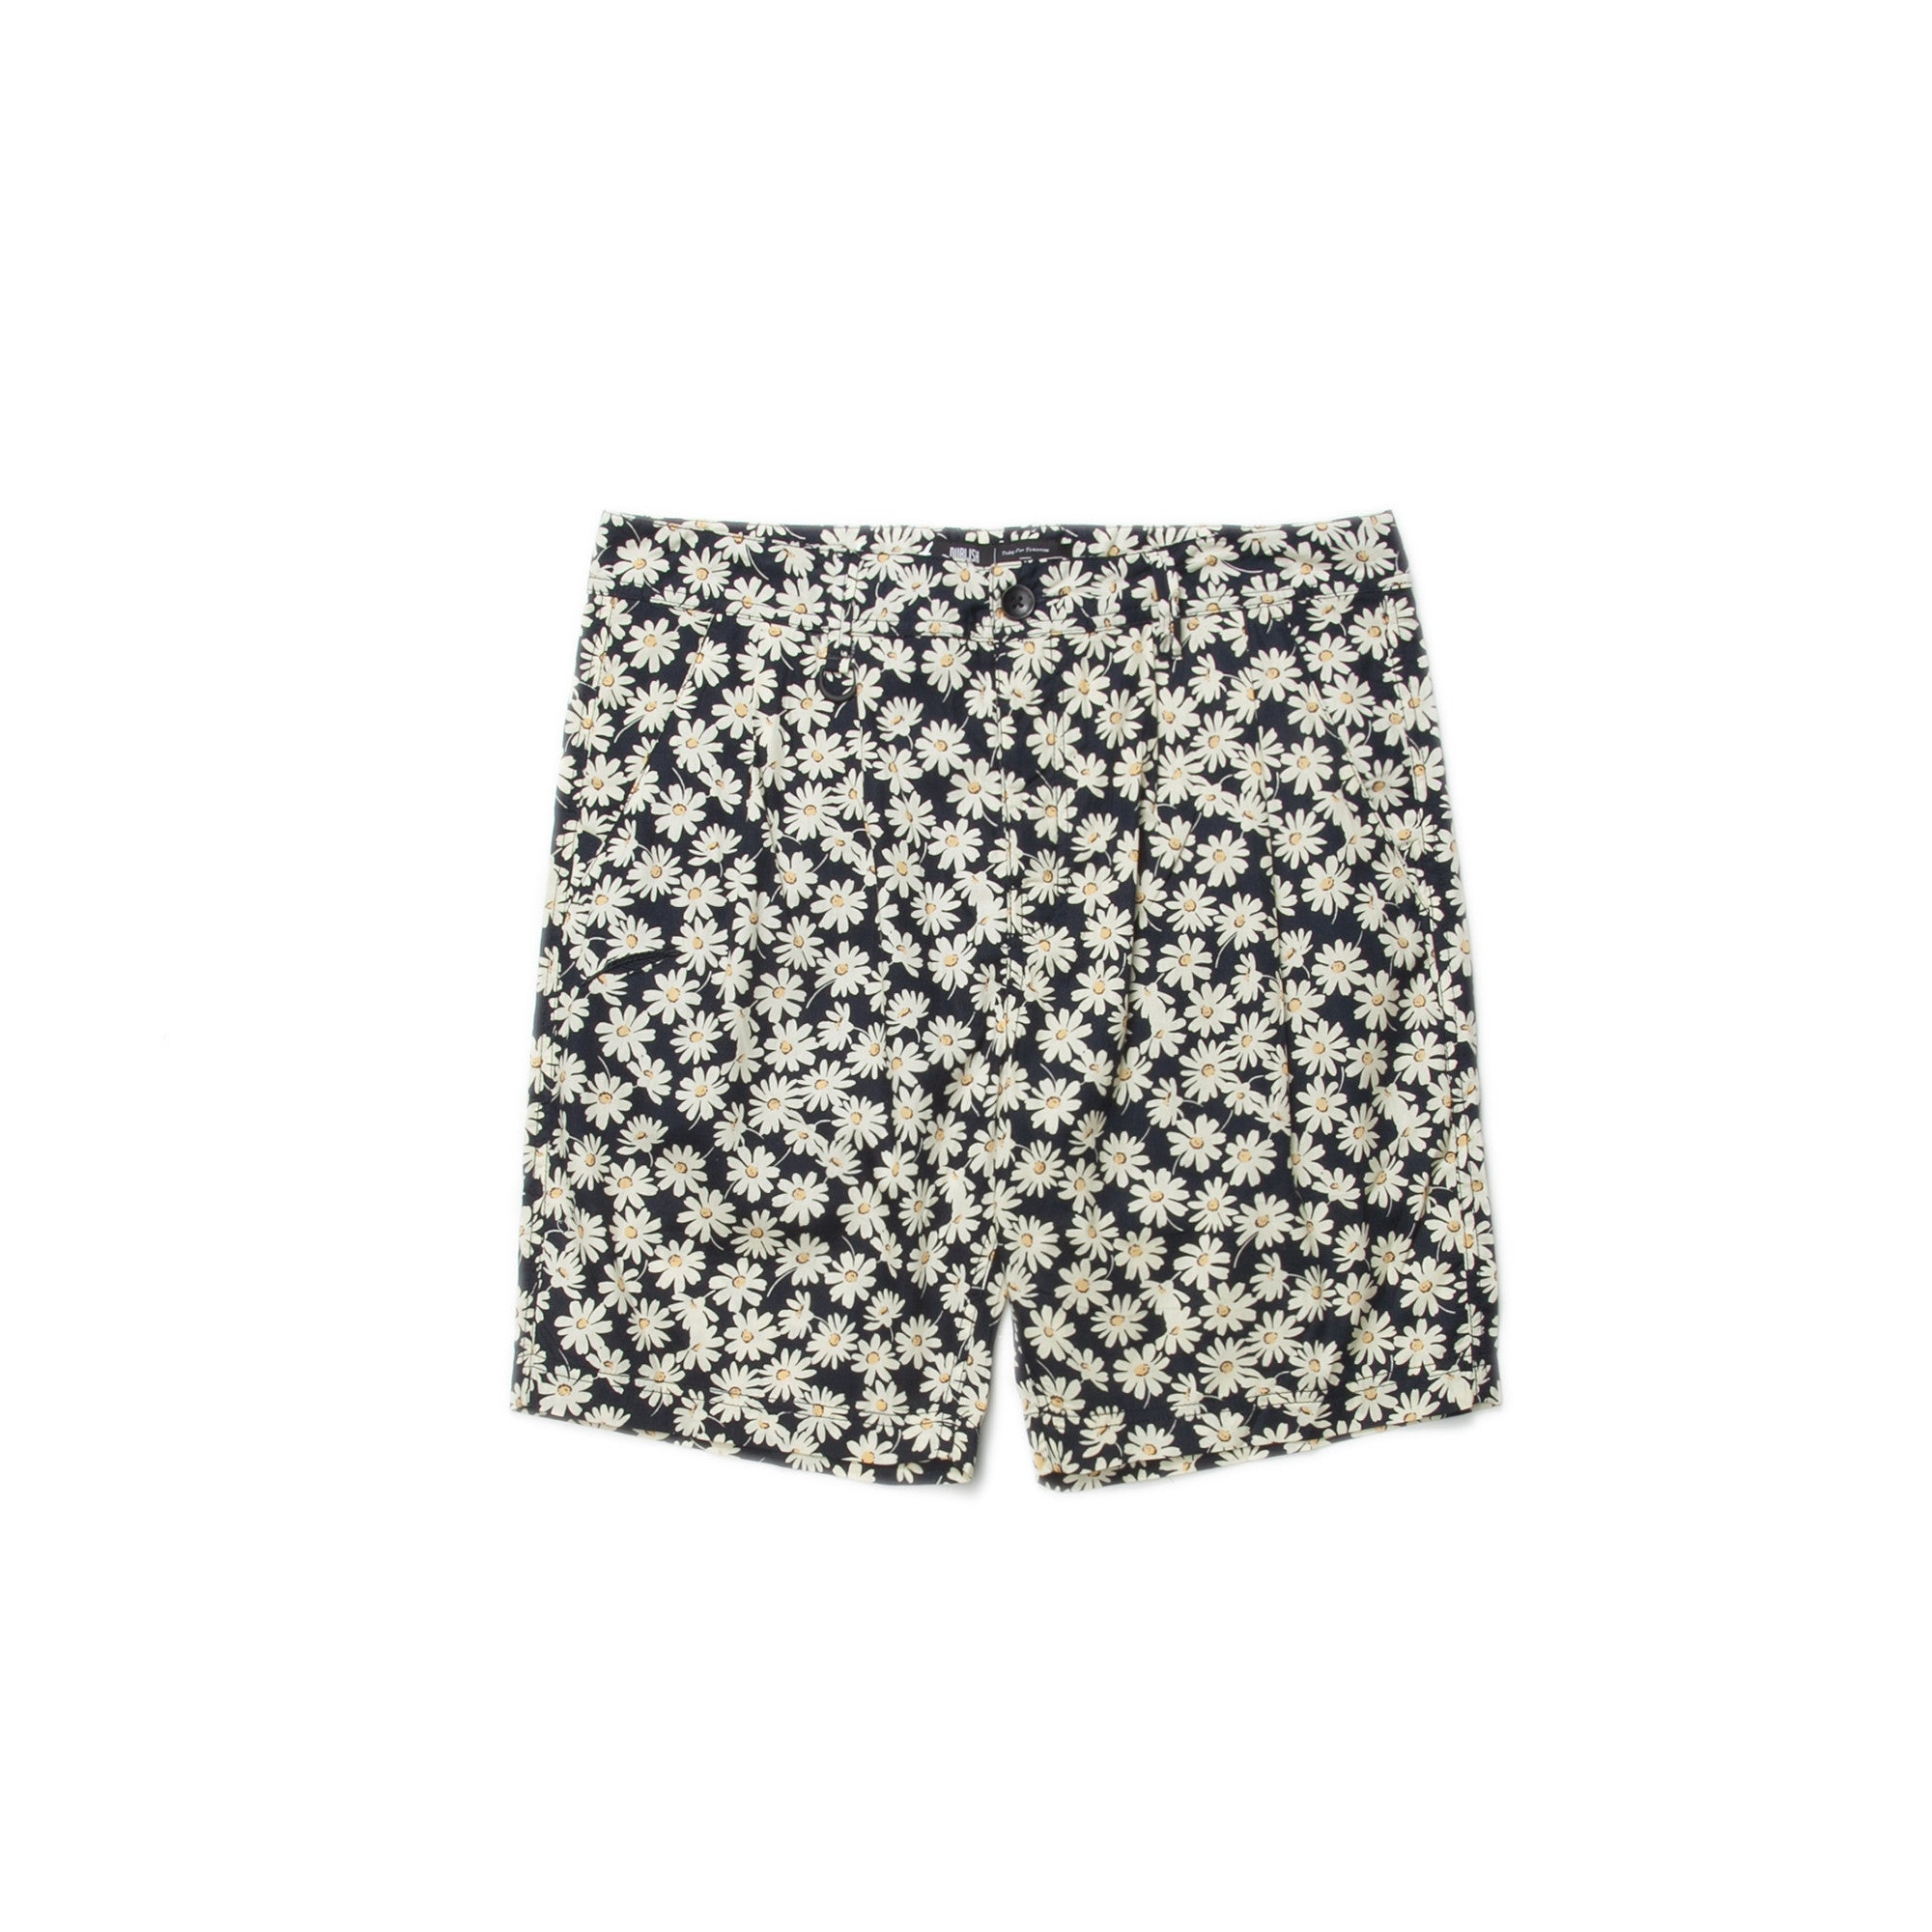 JAMED- SHORTS - WOVEN NAVY